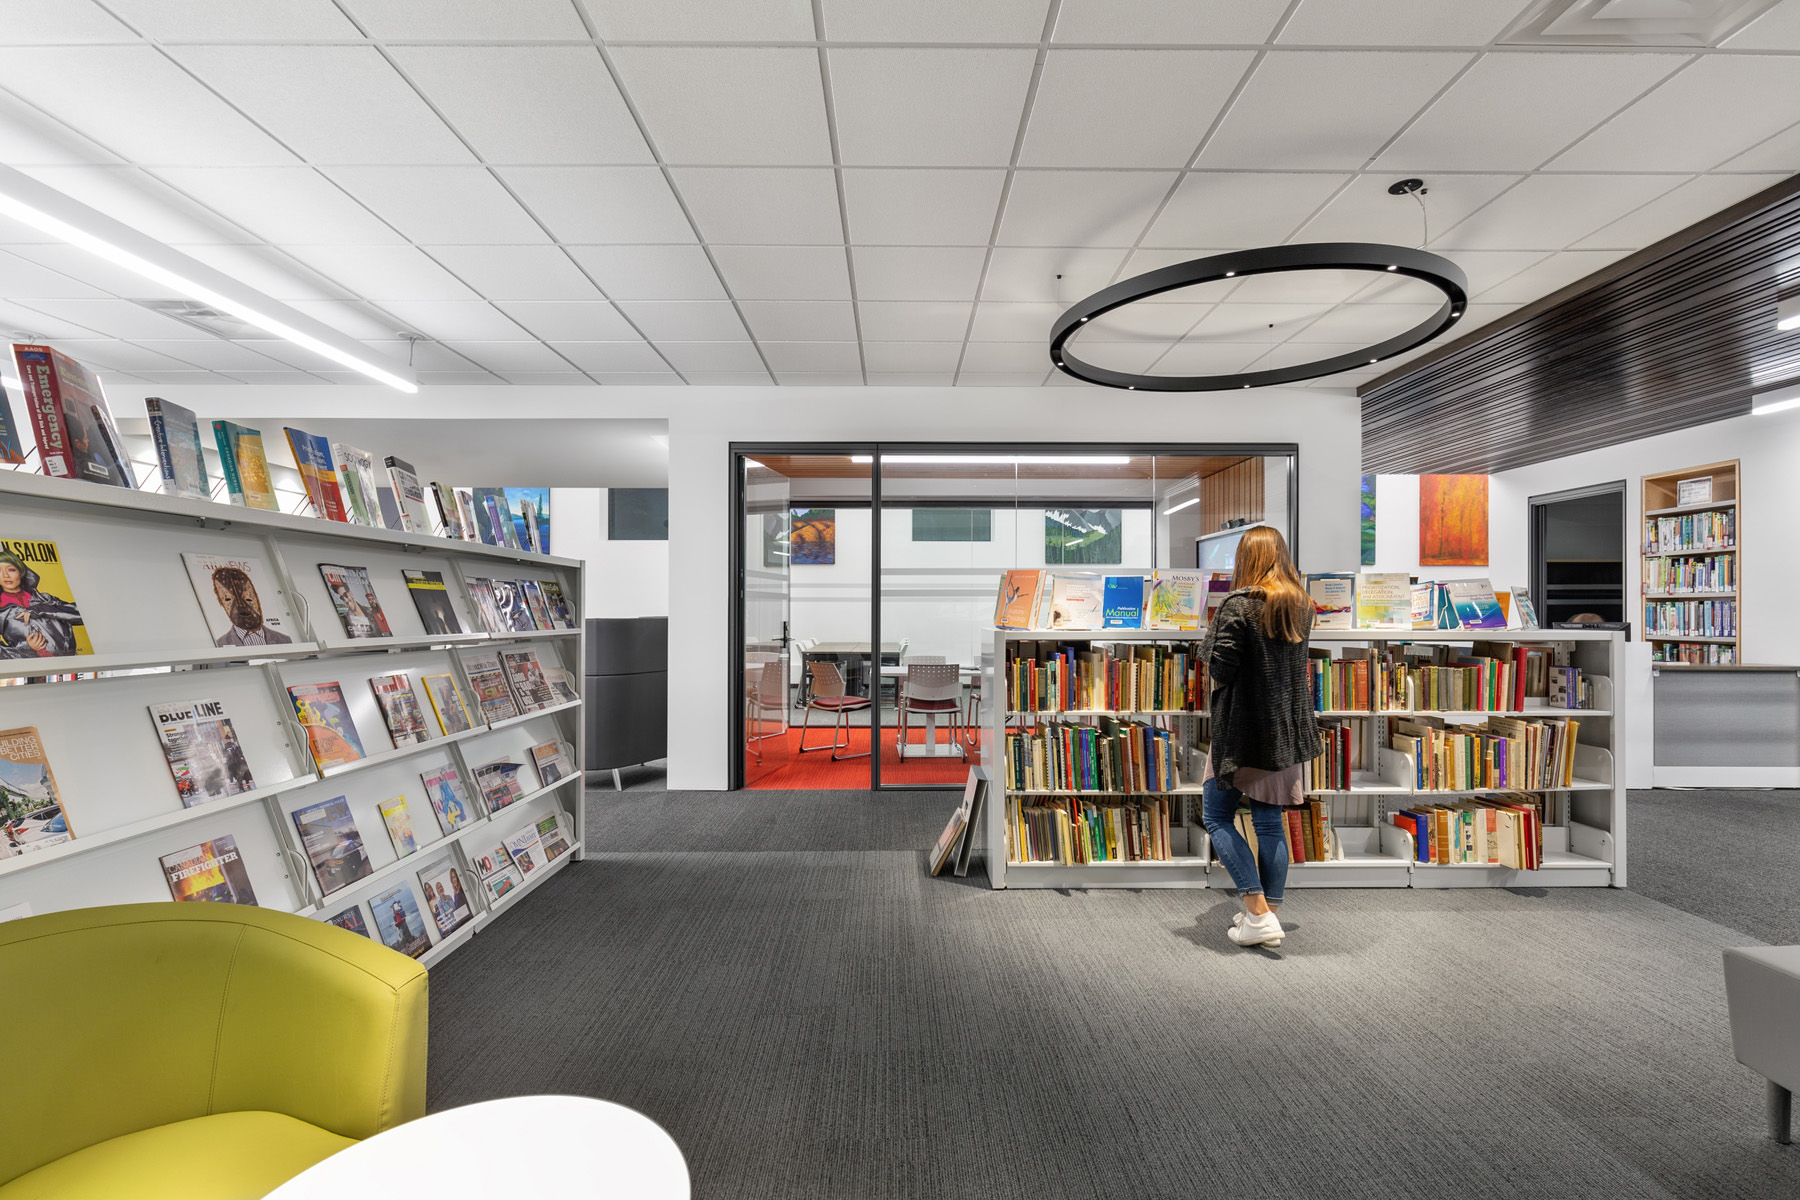 Student browsing bookshelves with magazine rack and green lounge chair on left with glazed meeting room in background